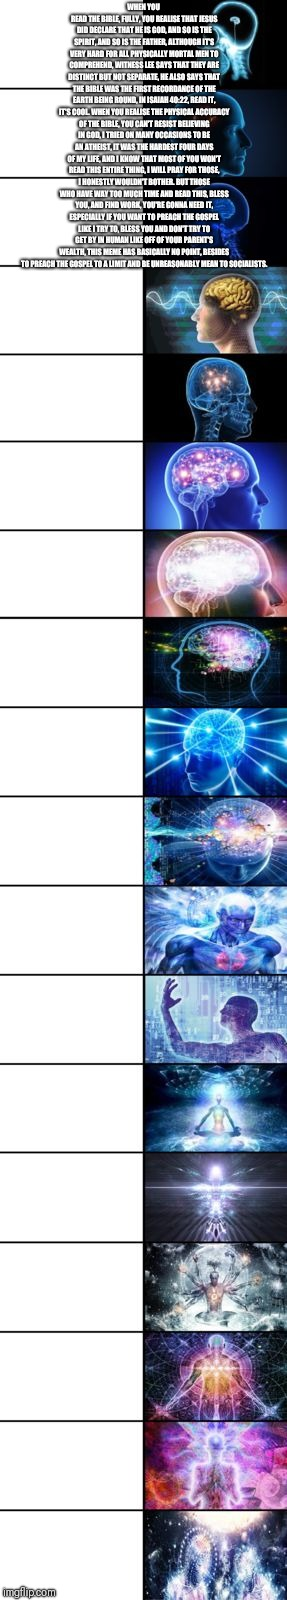 Expanding Brain longest version | WHEN YOU READ THE BIBLE, FULLY, YOU REALISE THAT JESUS DID DECLARE THAT HE IS GOD, AND SO IS THE SPIRIT, AND SO IS THE FATHER, ALTHOUGH IT'S | image tagged in expanding brain longest version | made w/ Imgflip meme maker